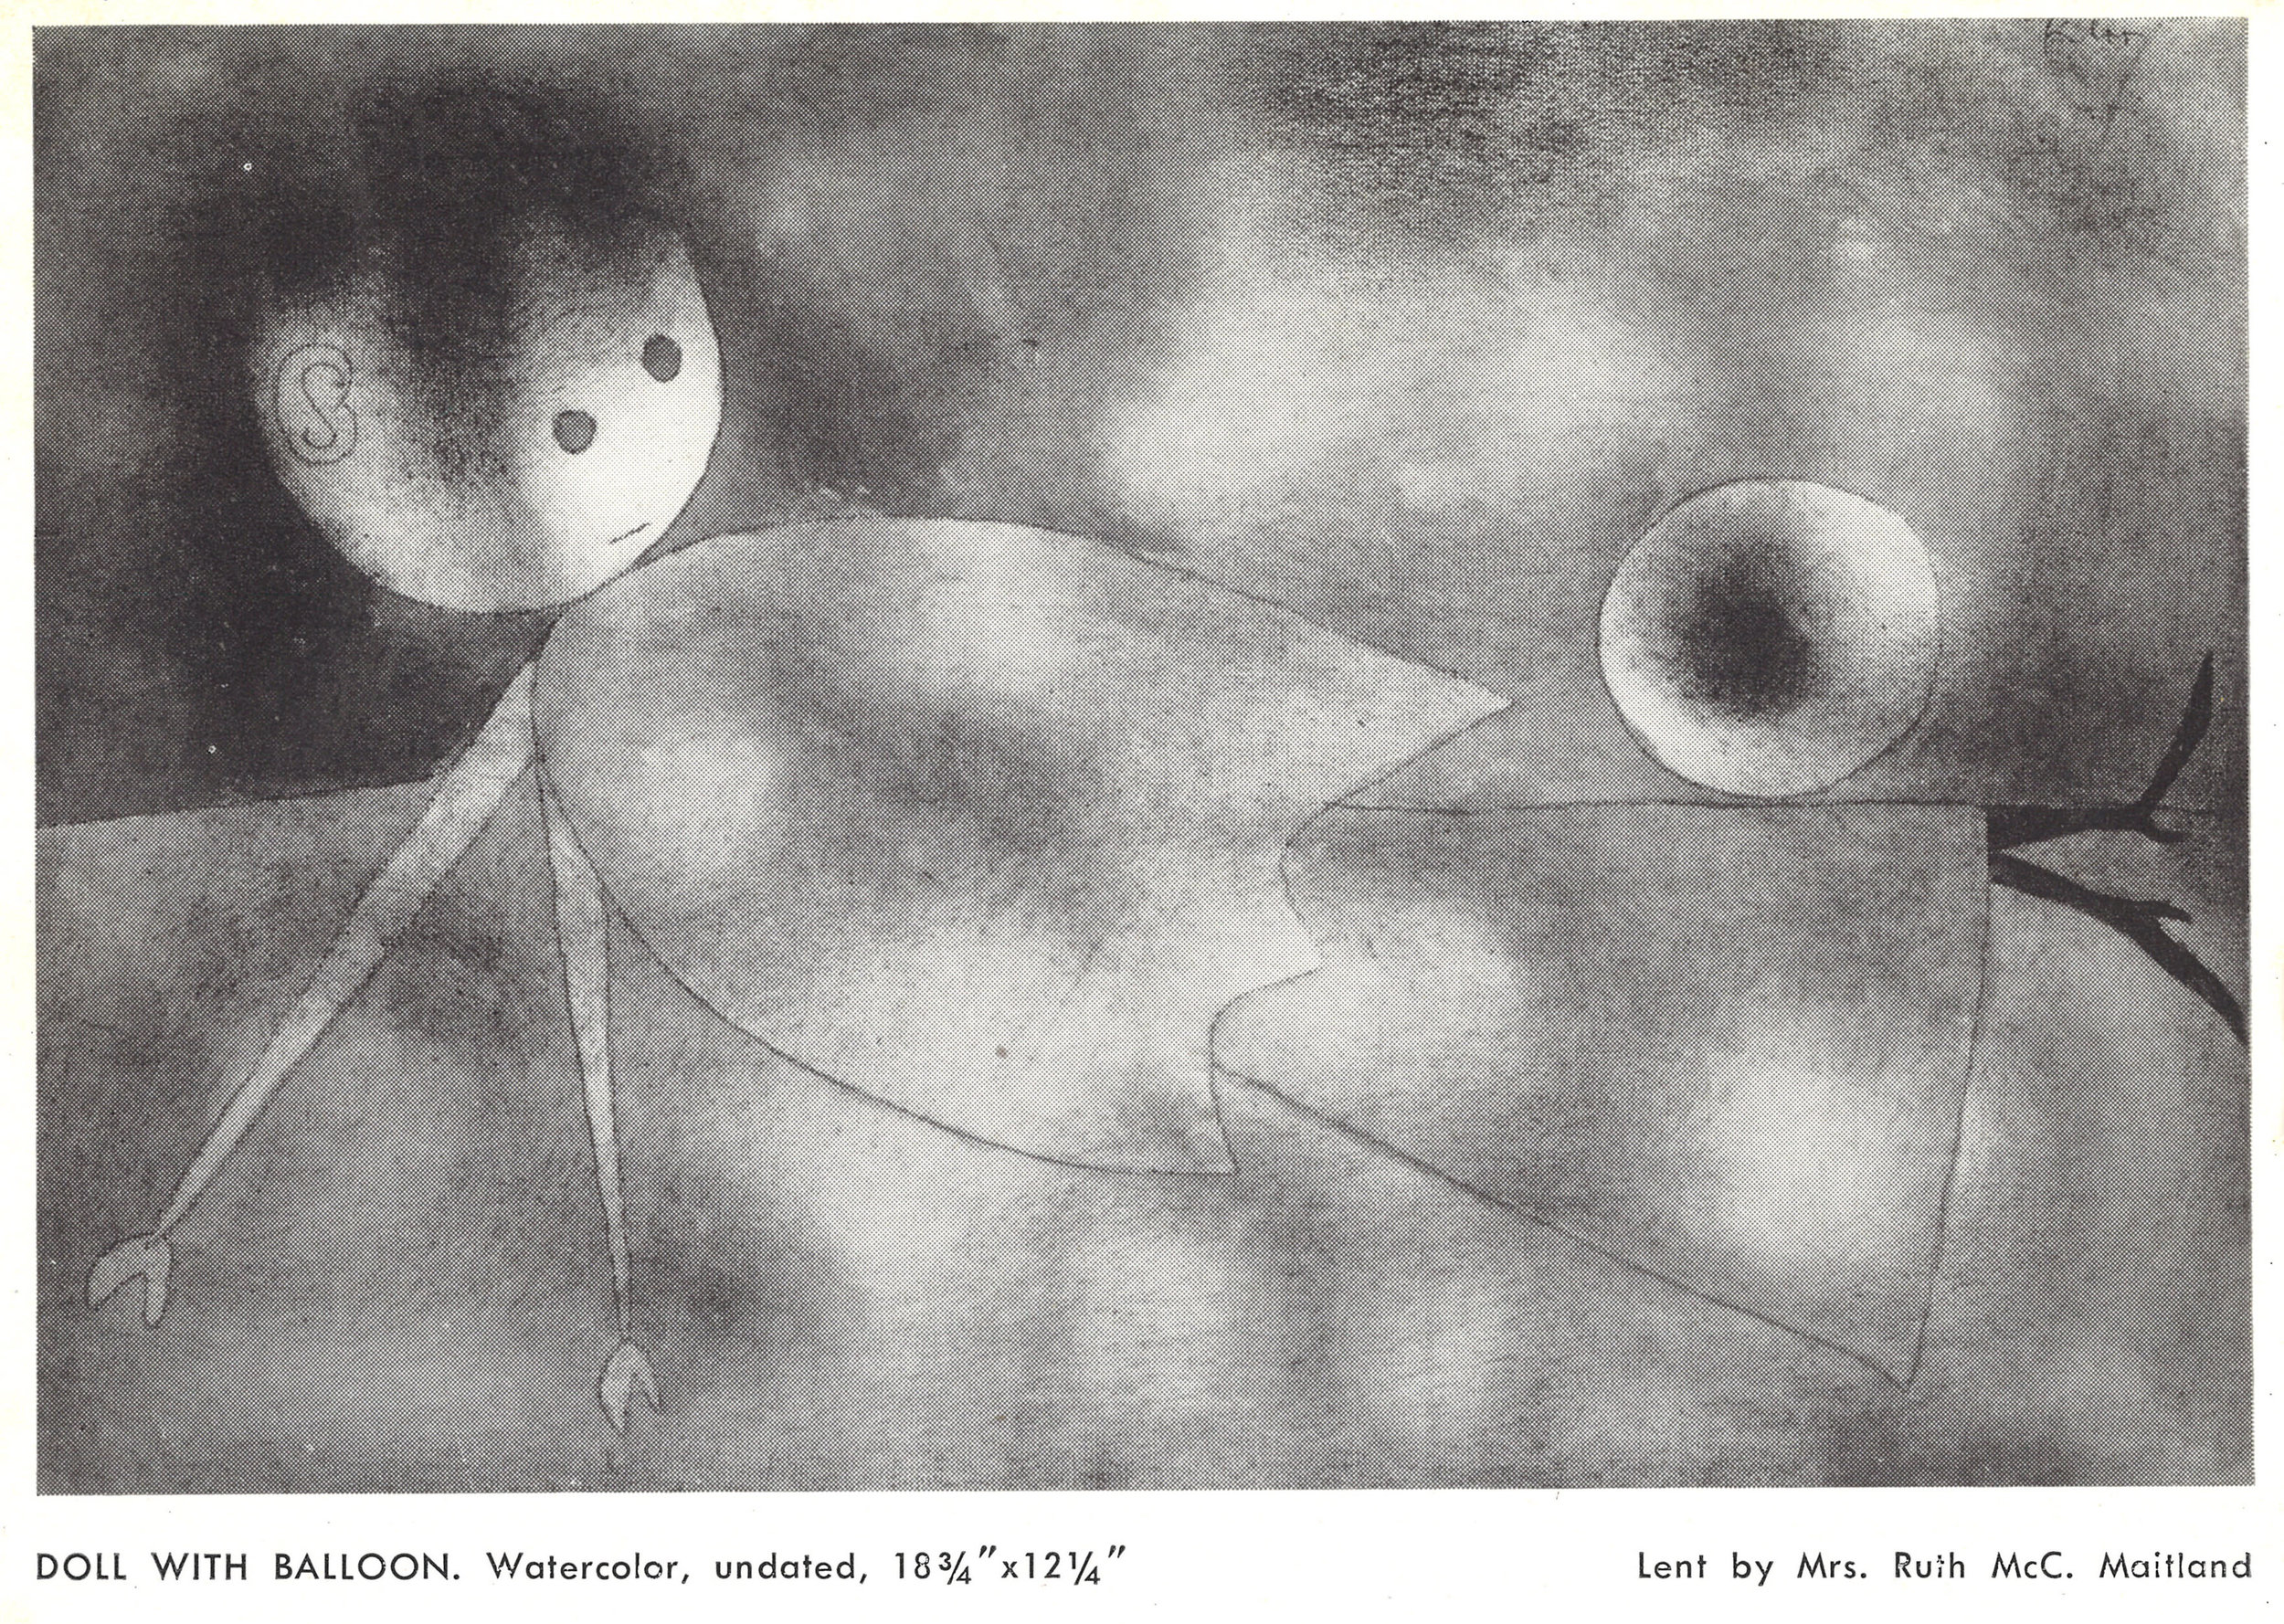 Abb. 1 Paul Klee,  Ball und Puppe , 1934, 145 (R5), Aquarell= und Ölfarben Ingres d'arches; Blatt mehrfarbig, Illustration in: Klee. 30 Years of Paintings, Water Colors, Drawings and Lithographs - and in a Klee-like-mood 2000 Years of Coptic, Persian, Chinese, European and Peruvian Textiles. The Modern Institute of Art, Beverly Hills, 3.9.-6.10.1948, Nr. 69.  © Zentrum Paul Klee, Bern, Archiv